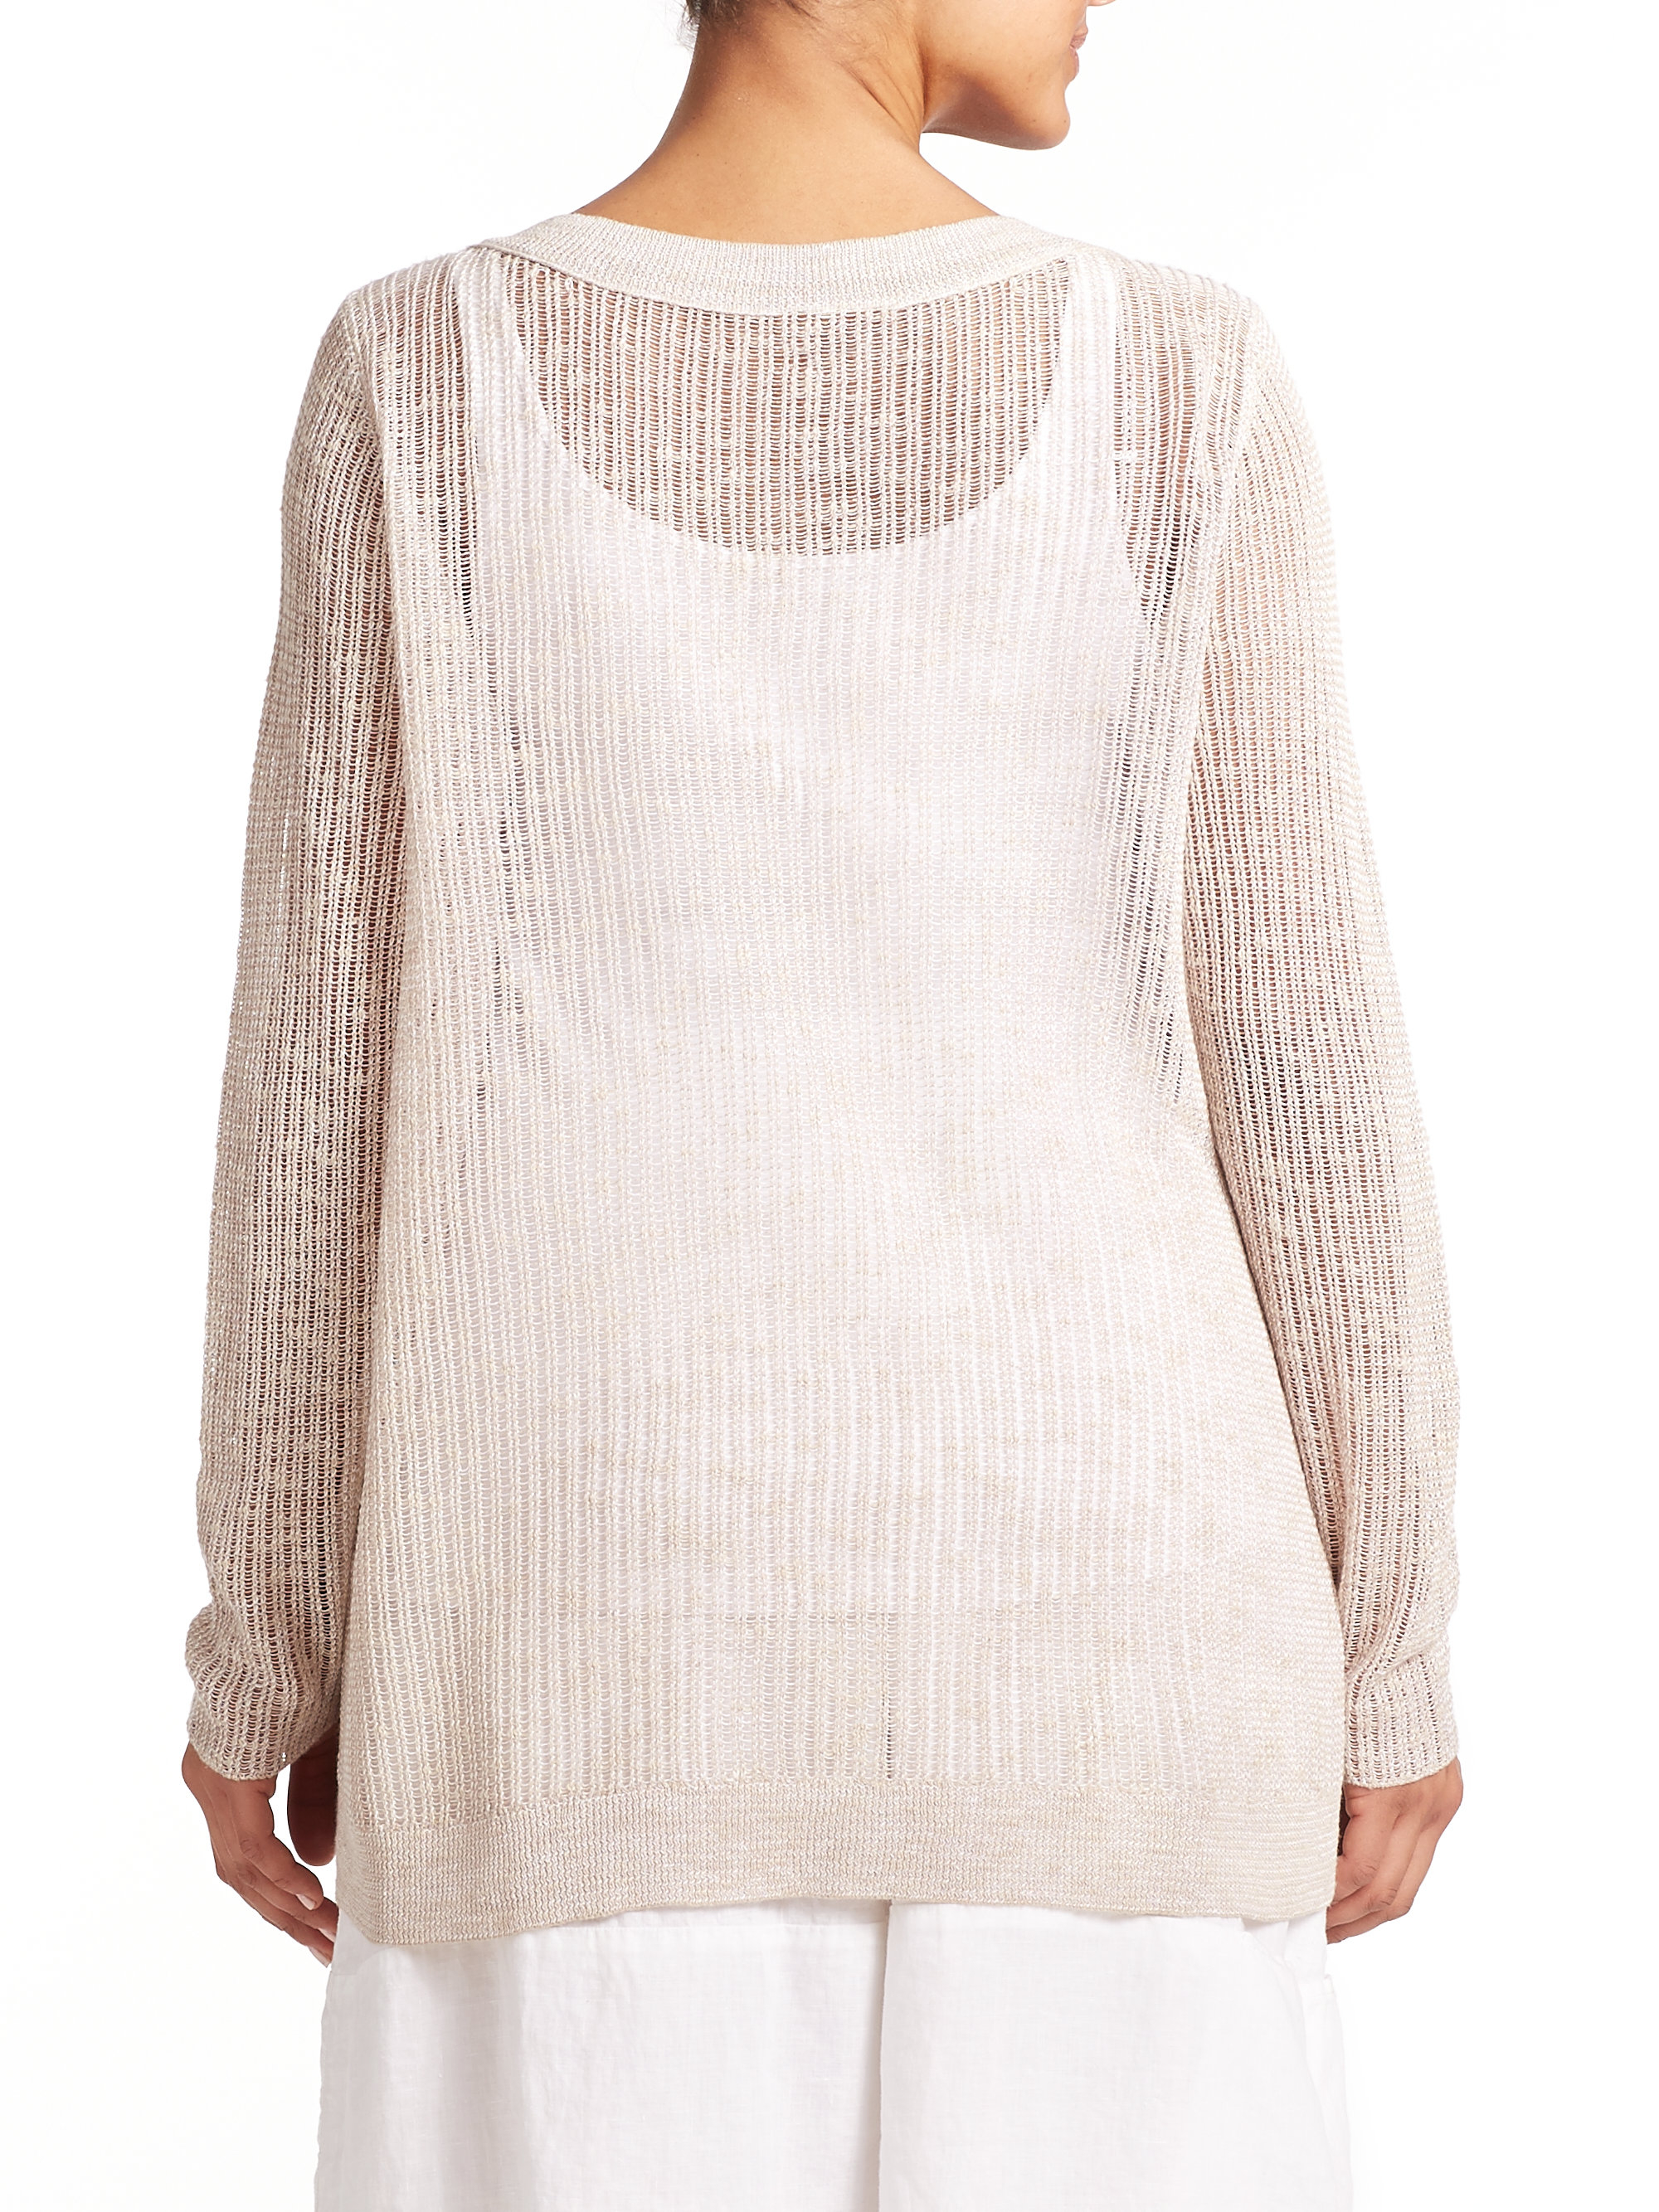 Lyst Eileen Fisher Linen Cotton Open Knit Top In Natural